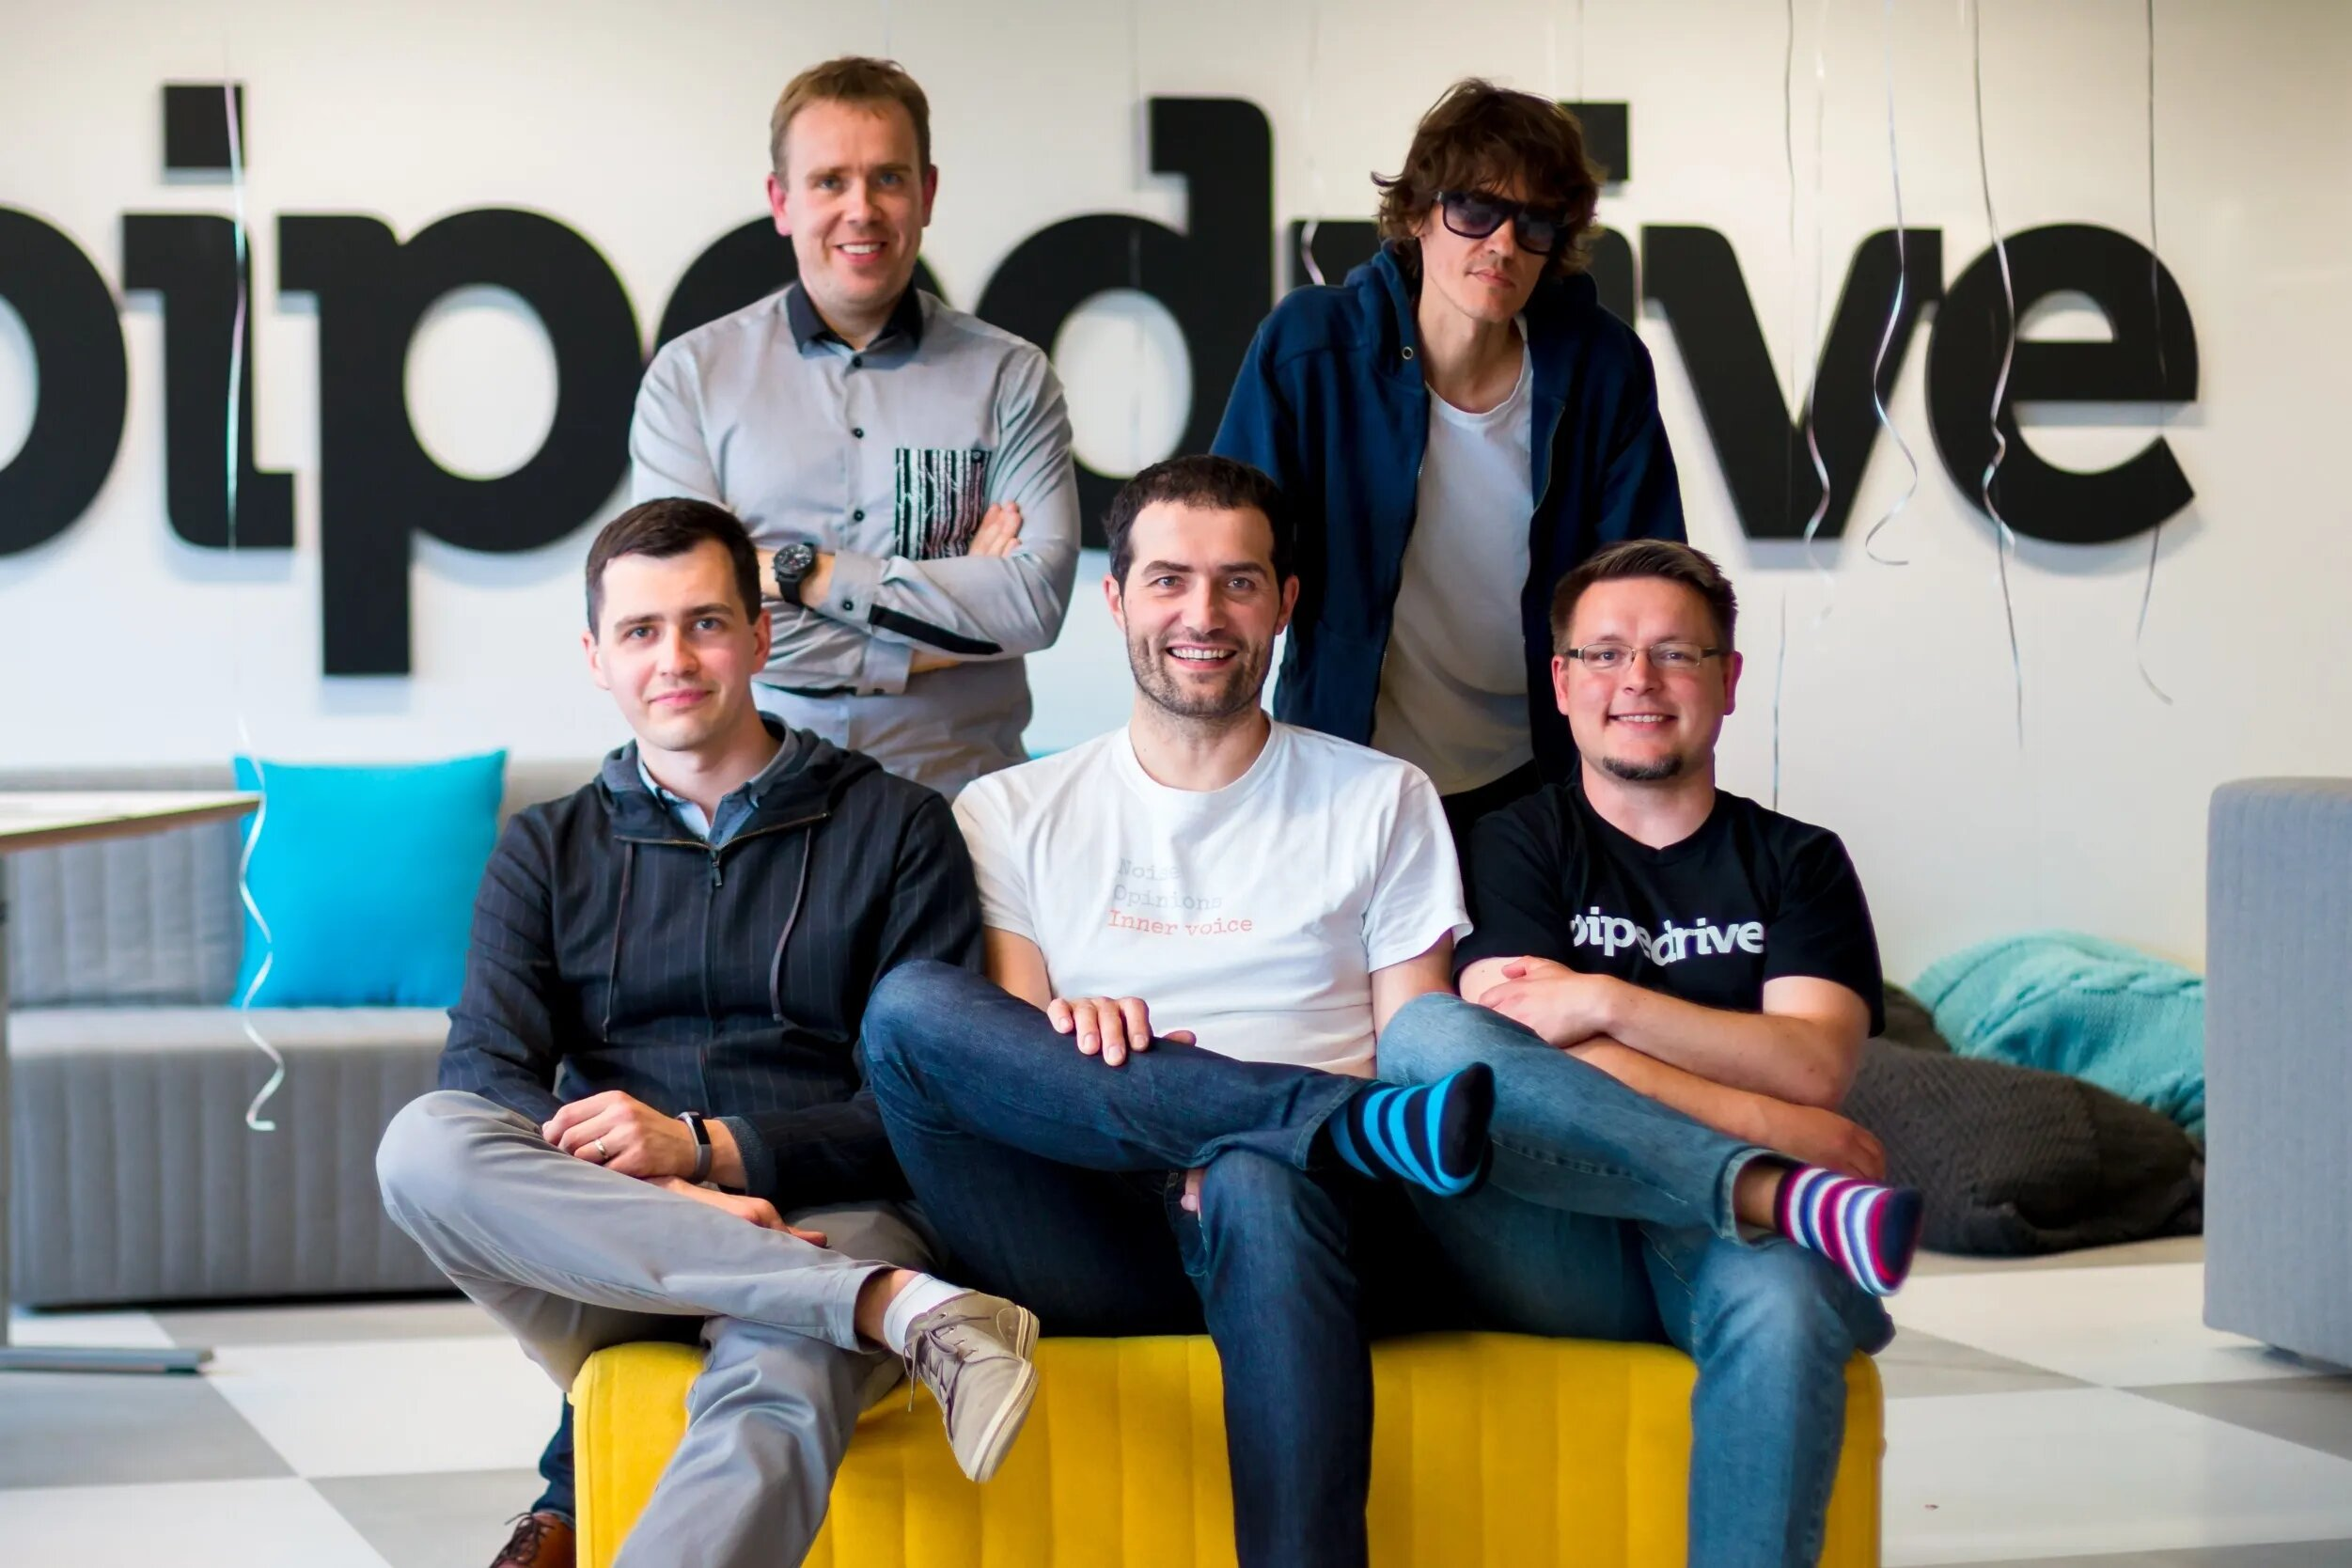 pipedrive_founders